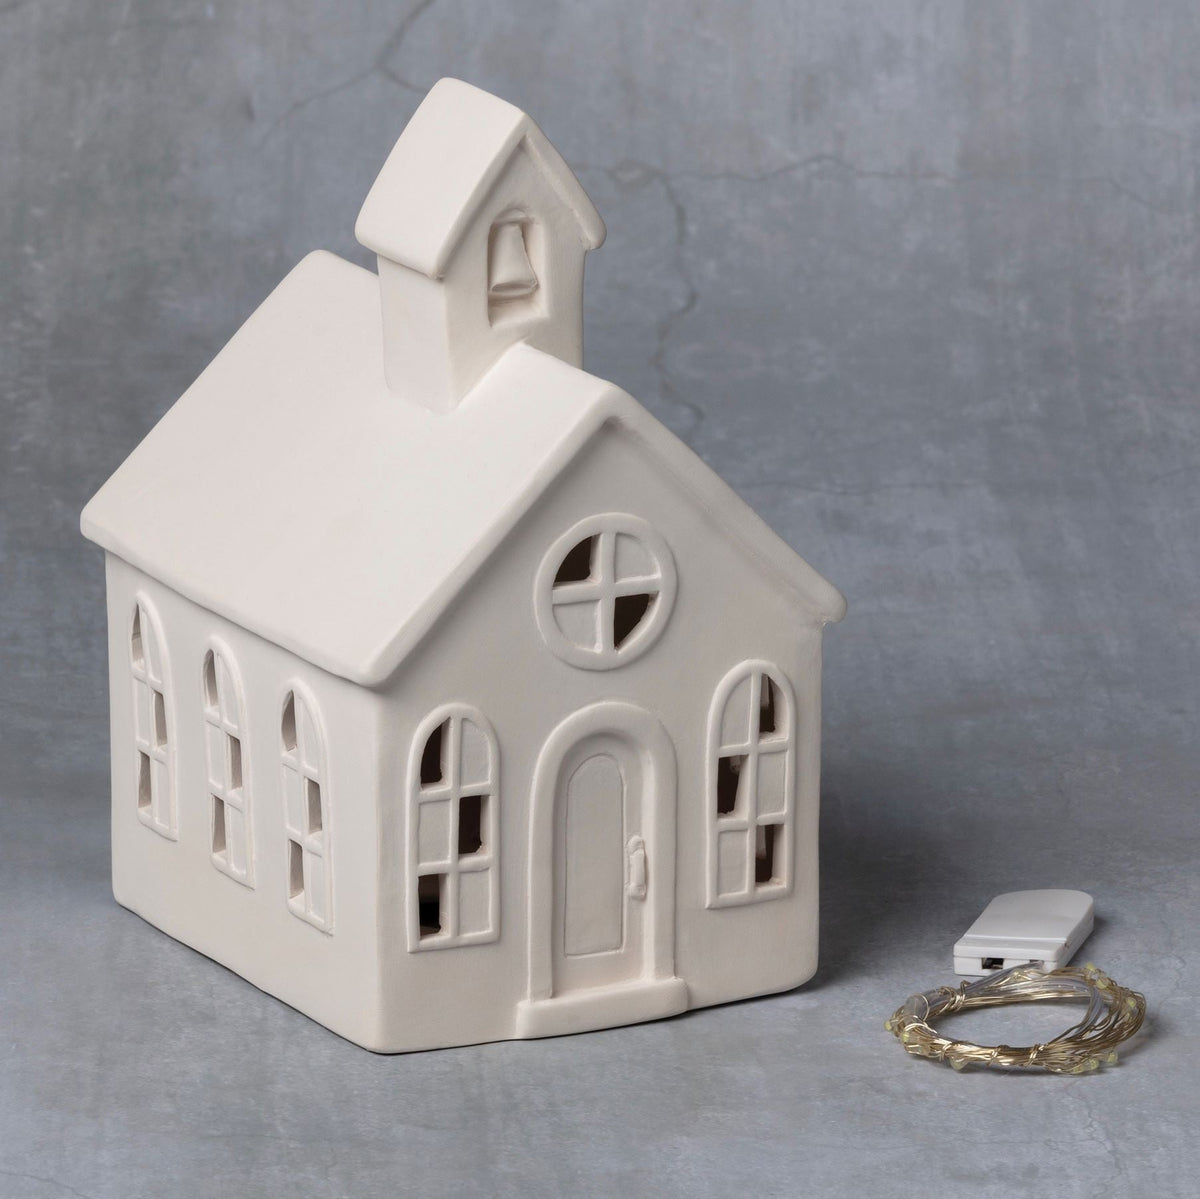 Duncan 43281 Bisque Light Up Church